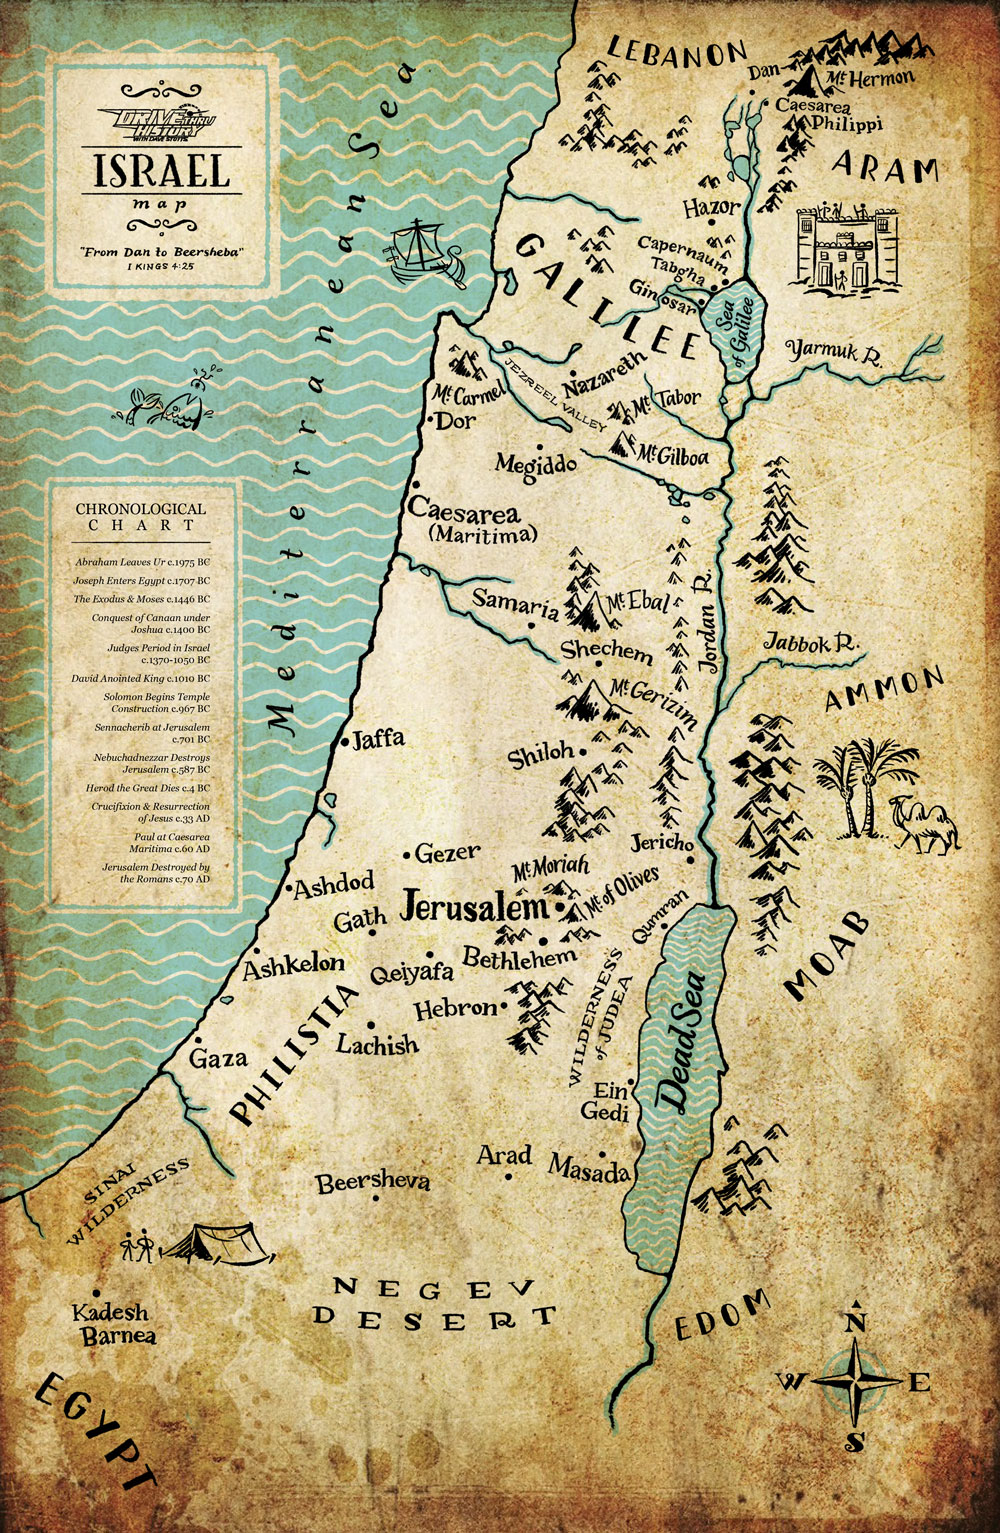 Israel_map_full_web.jpg